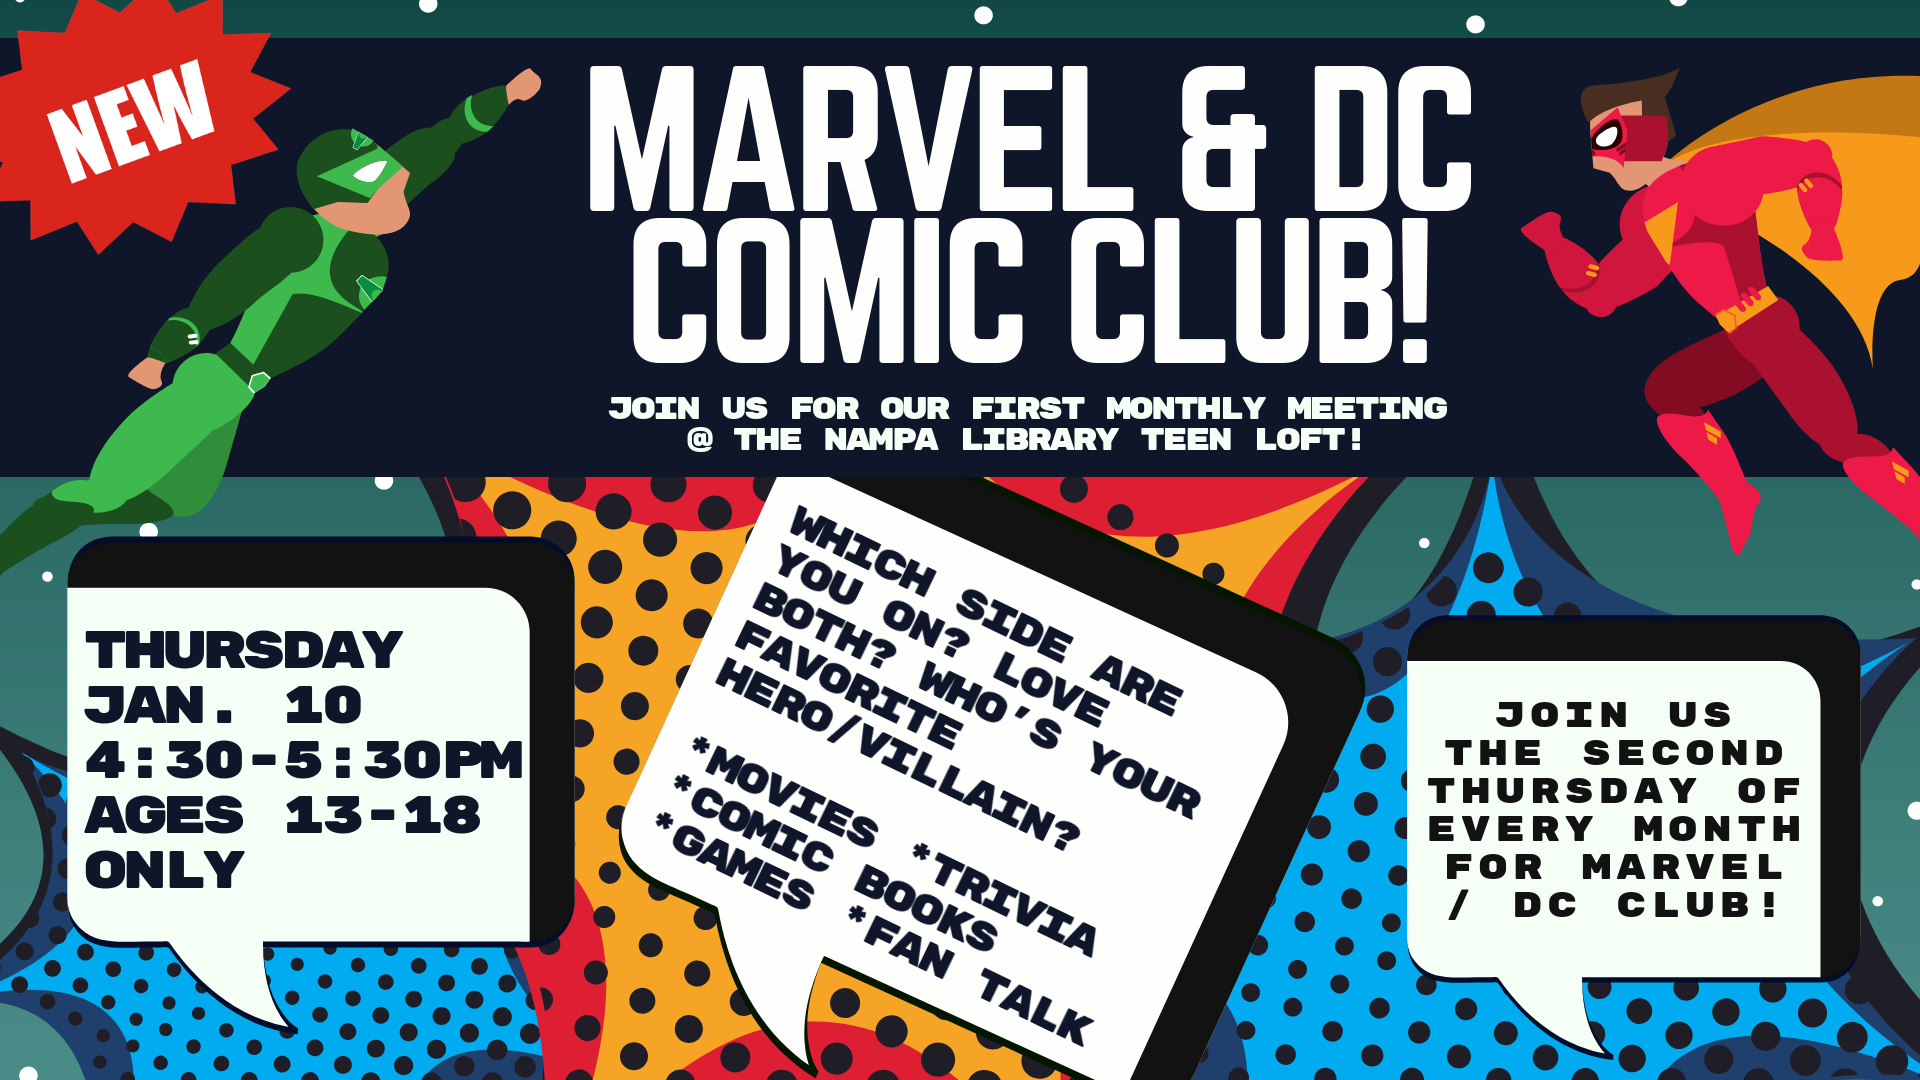 Marvel & DC Teen Comic Club!